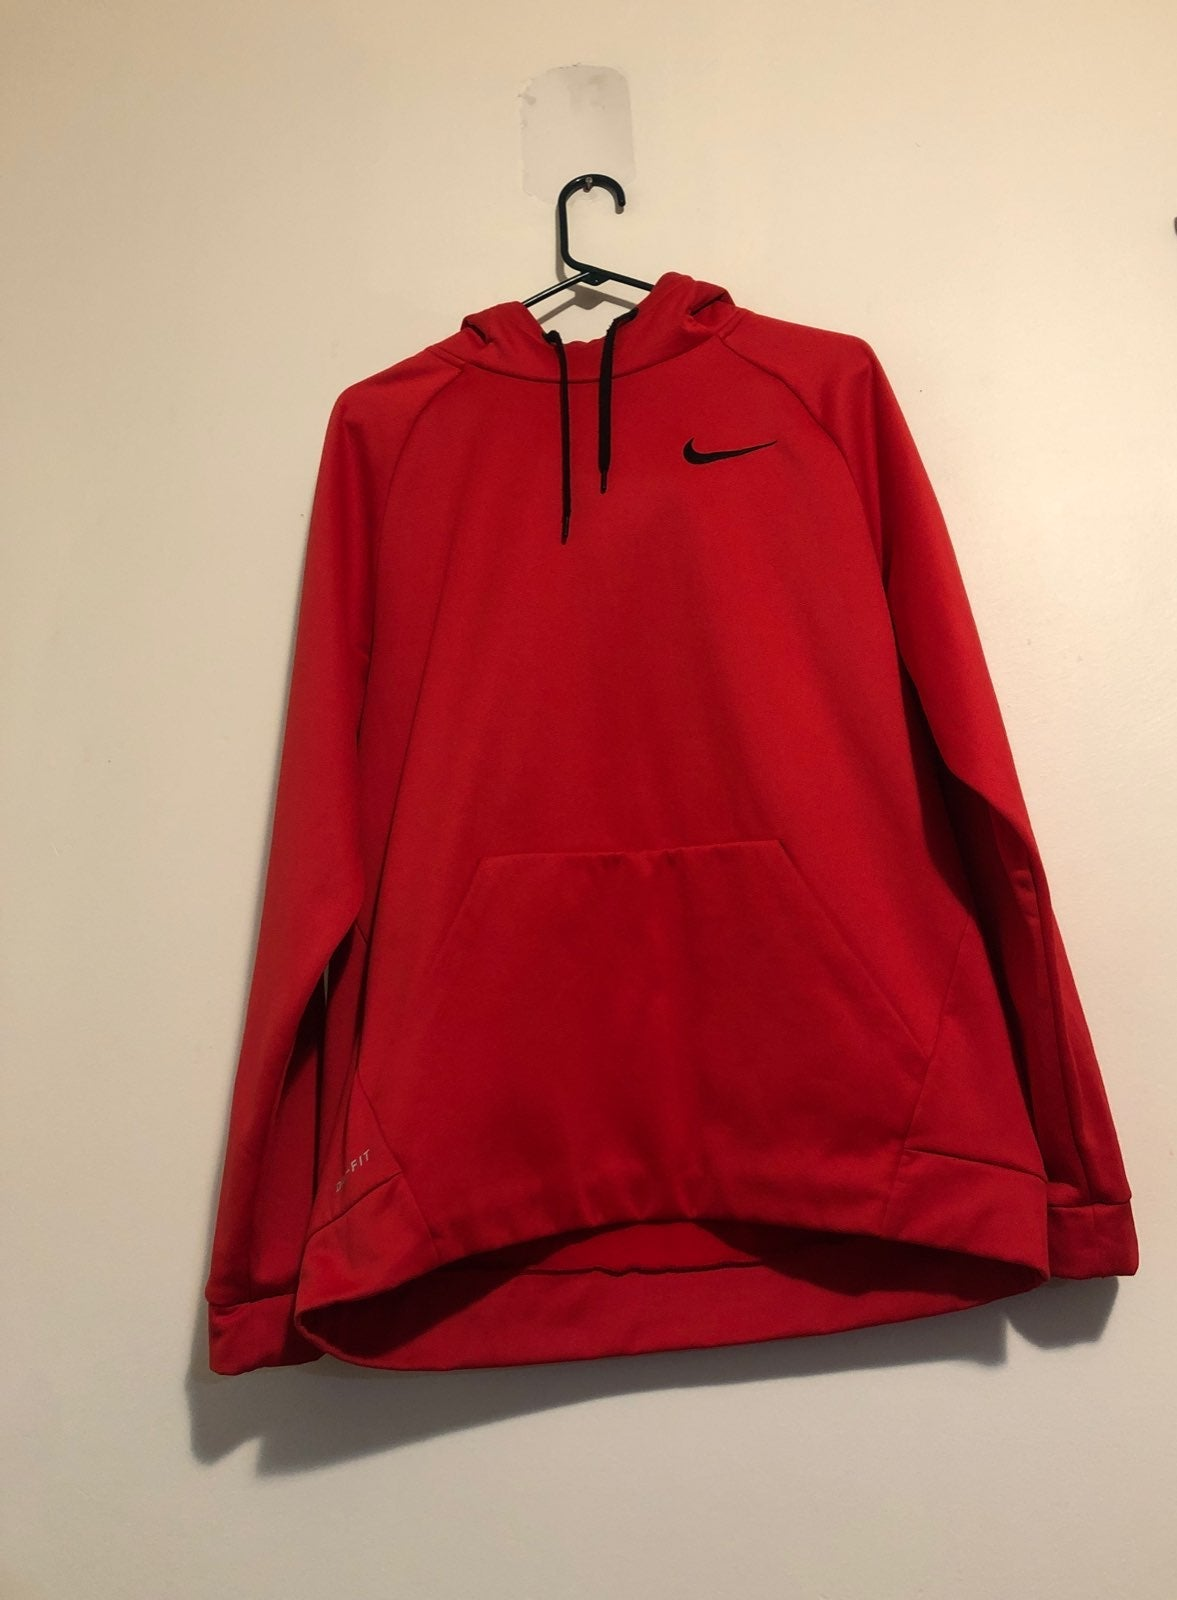 Nike hood hoodies for men